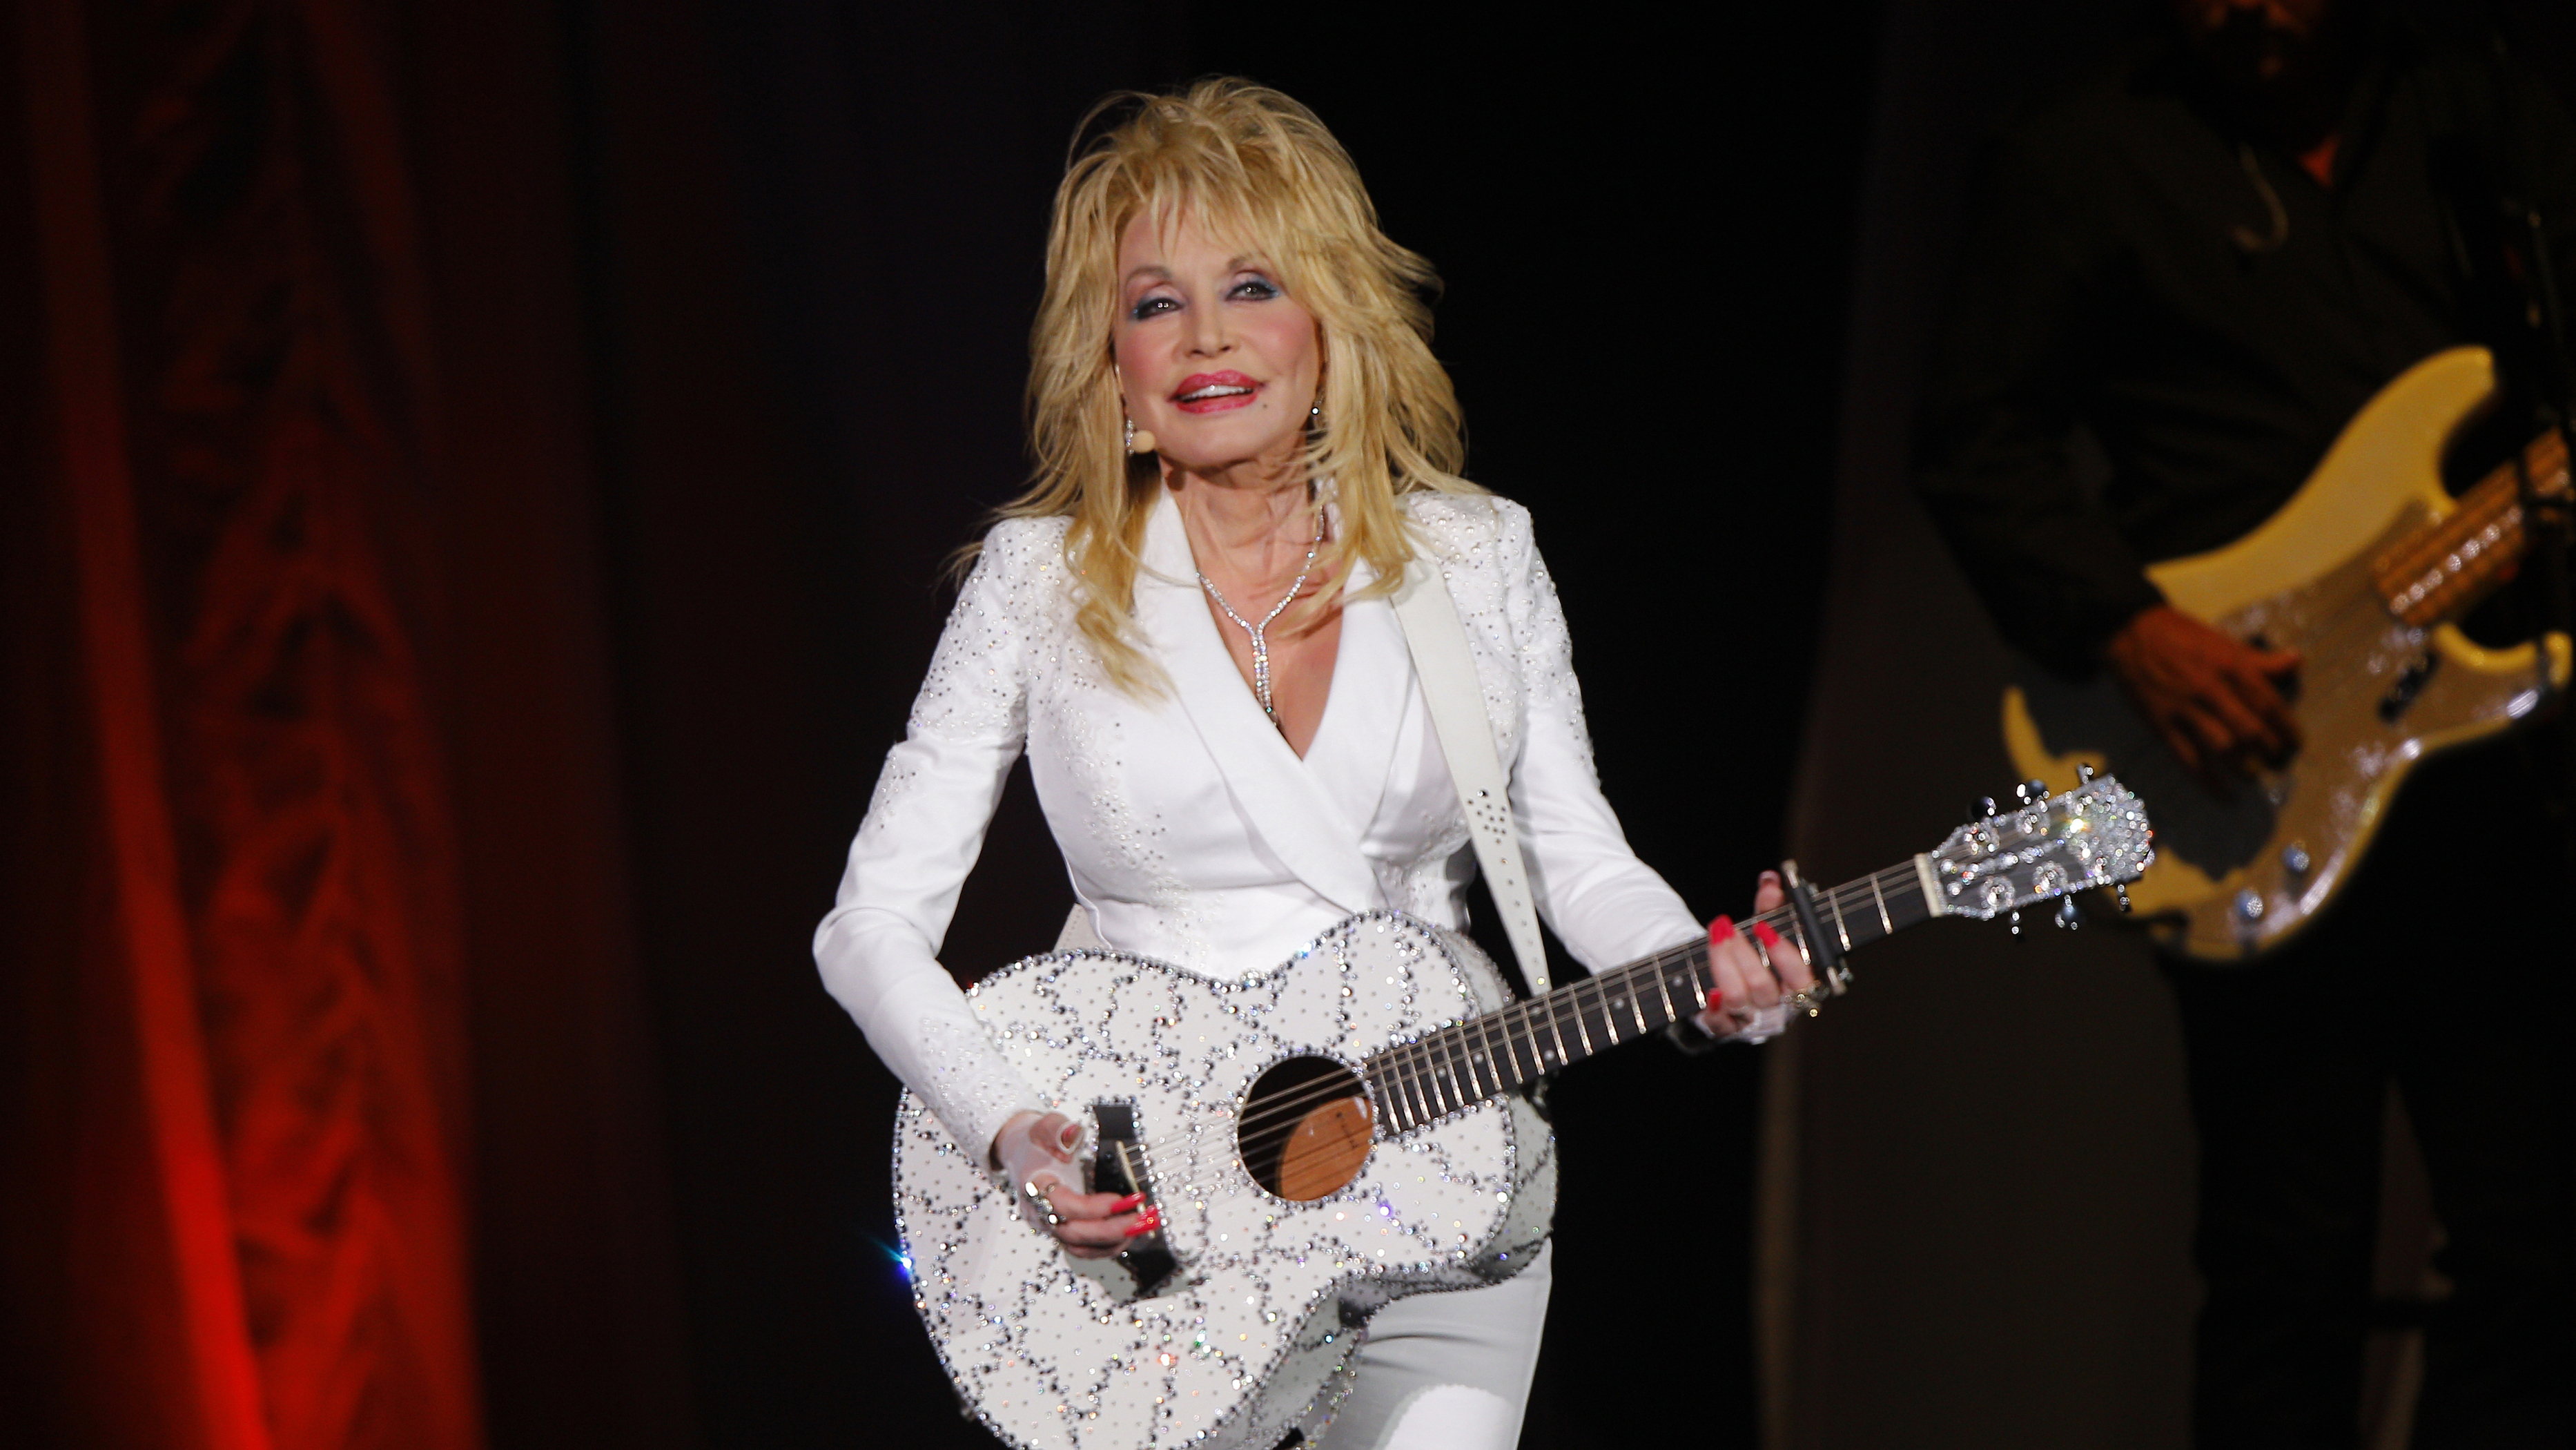 Dolly Parton addresses her big donation that led to a coronavirus vaccine: 'I just wanted it to do good' - Fox News